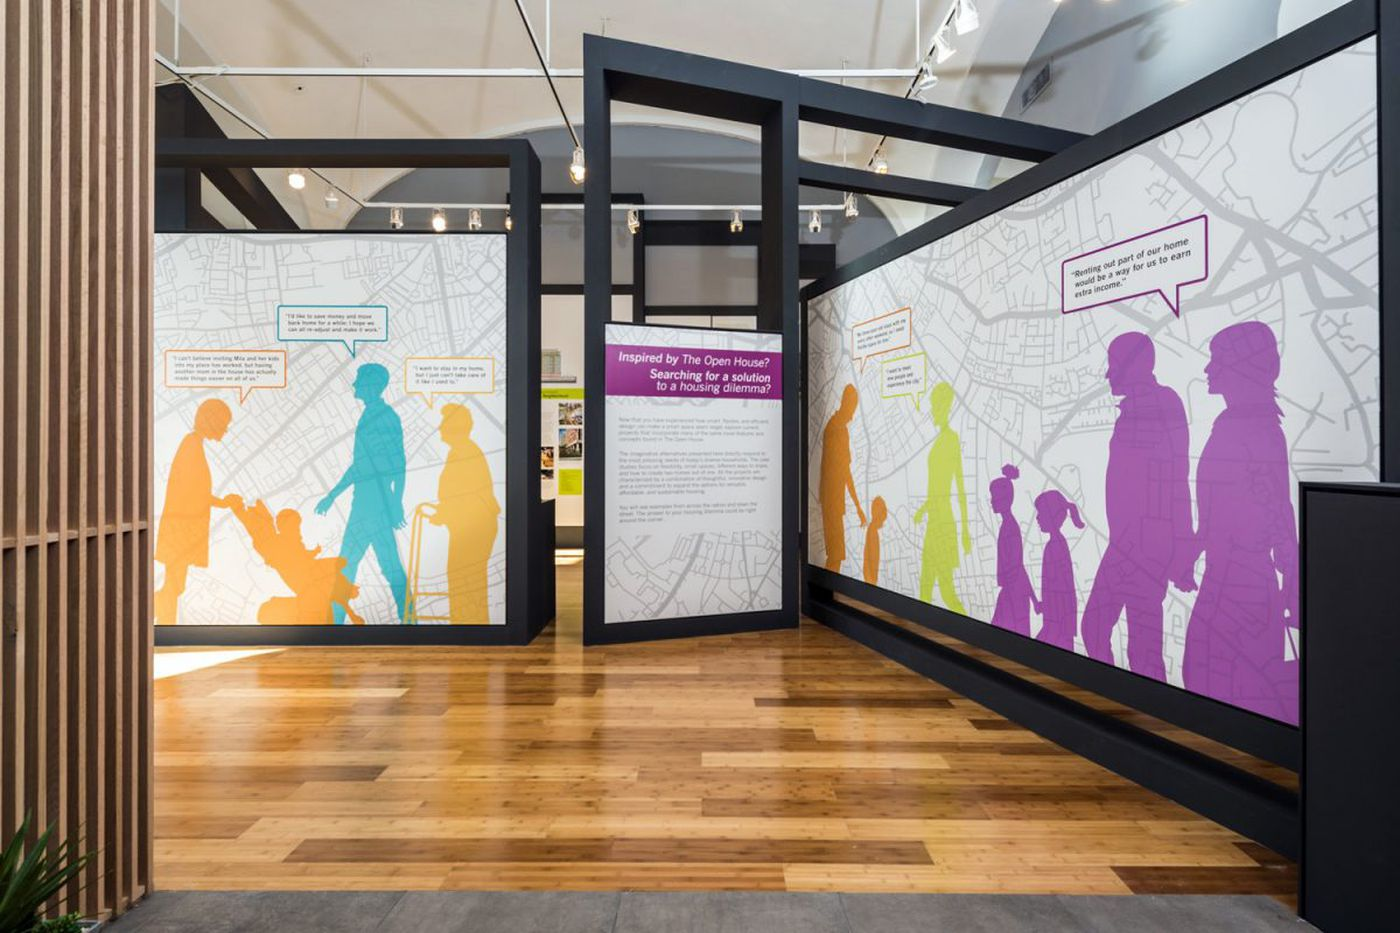 'Making Room for America' at the National Building Museum in Washington